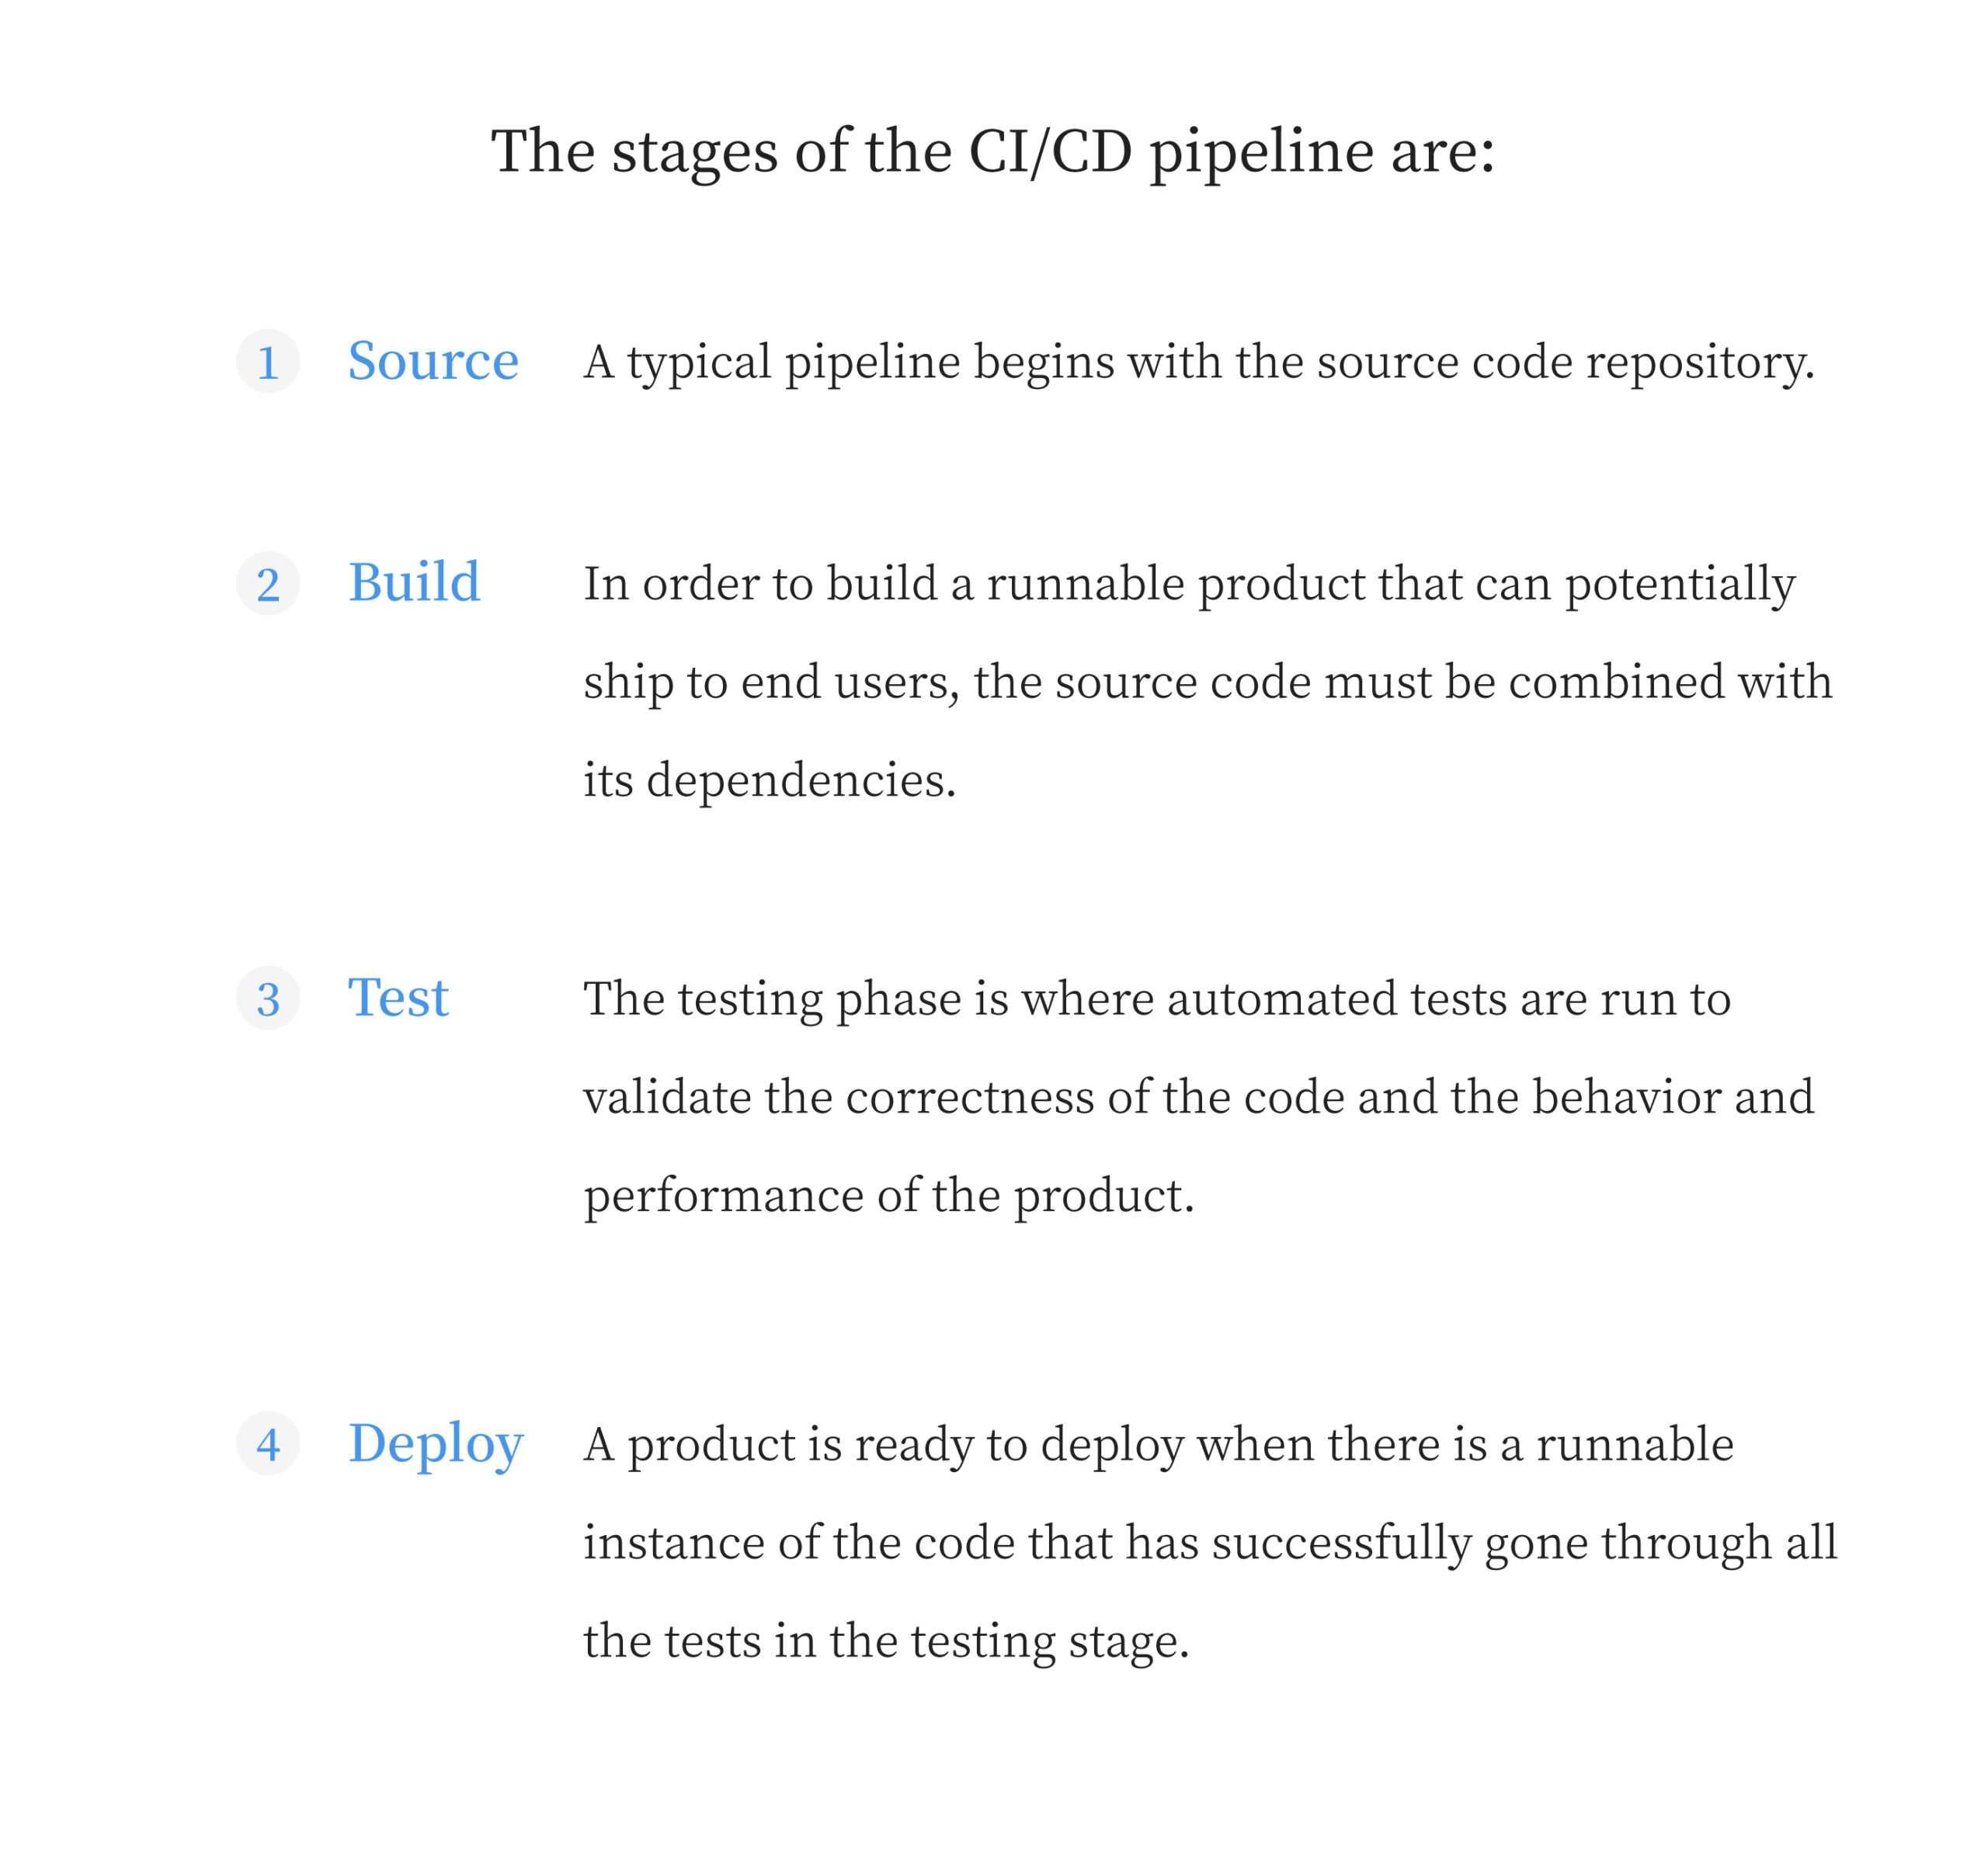 The stages of the CI/CD pipeline are: Source, Build, Test, Deploy